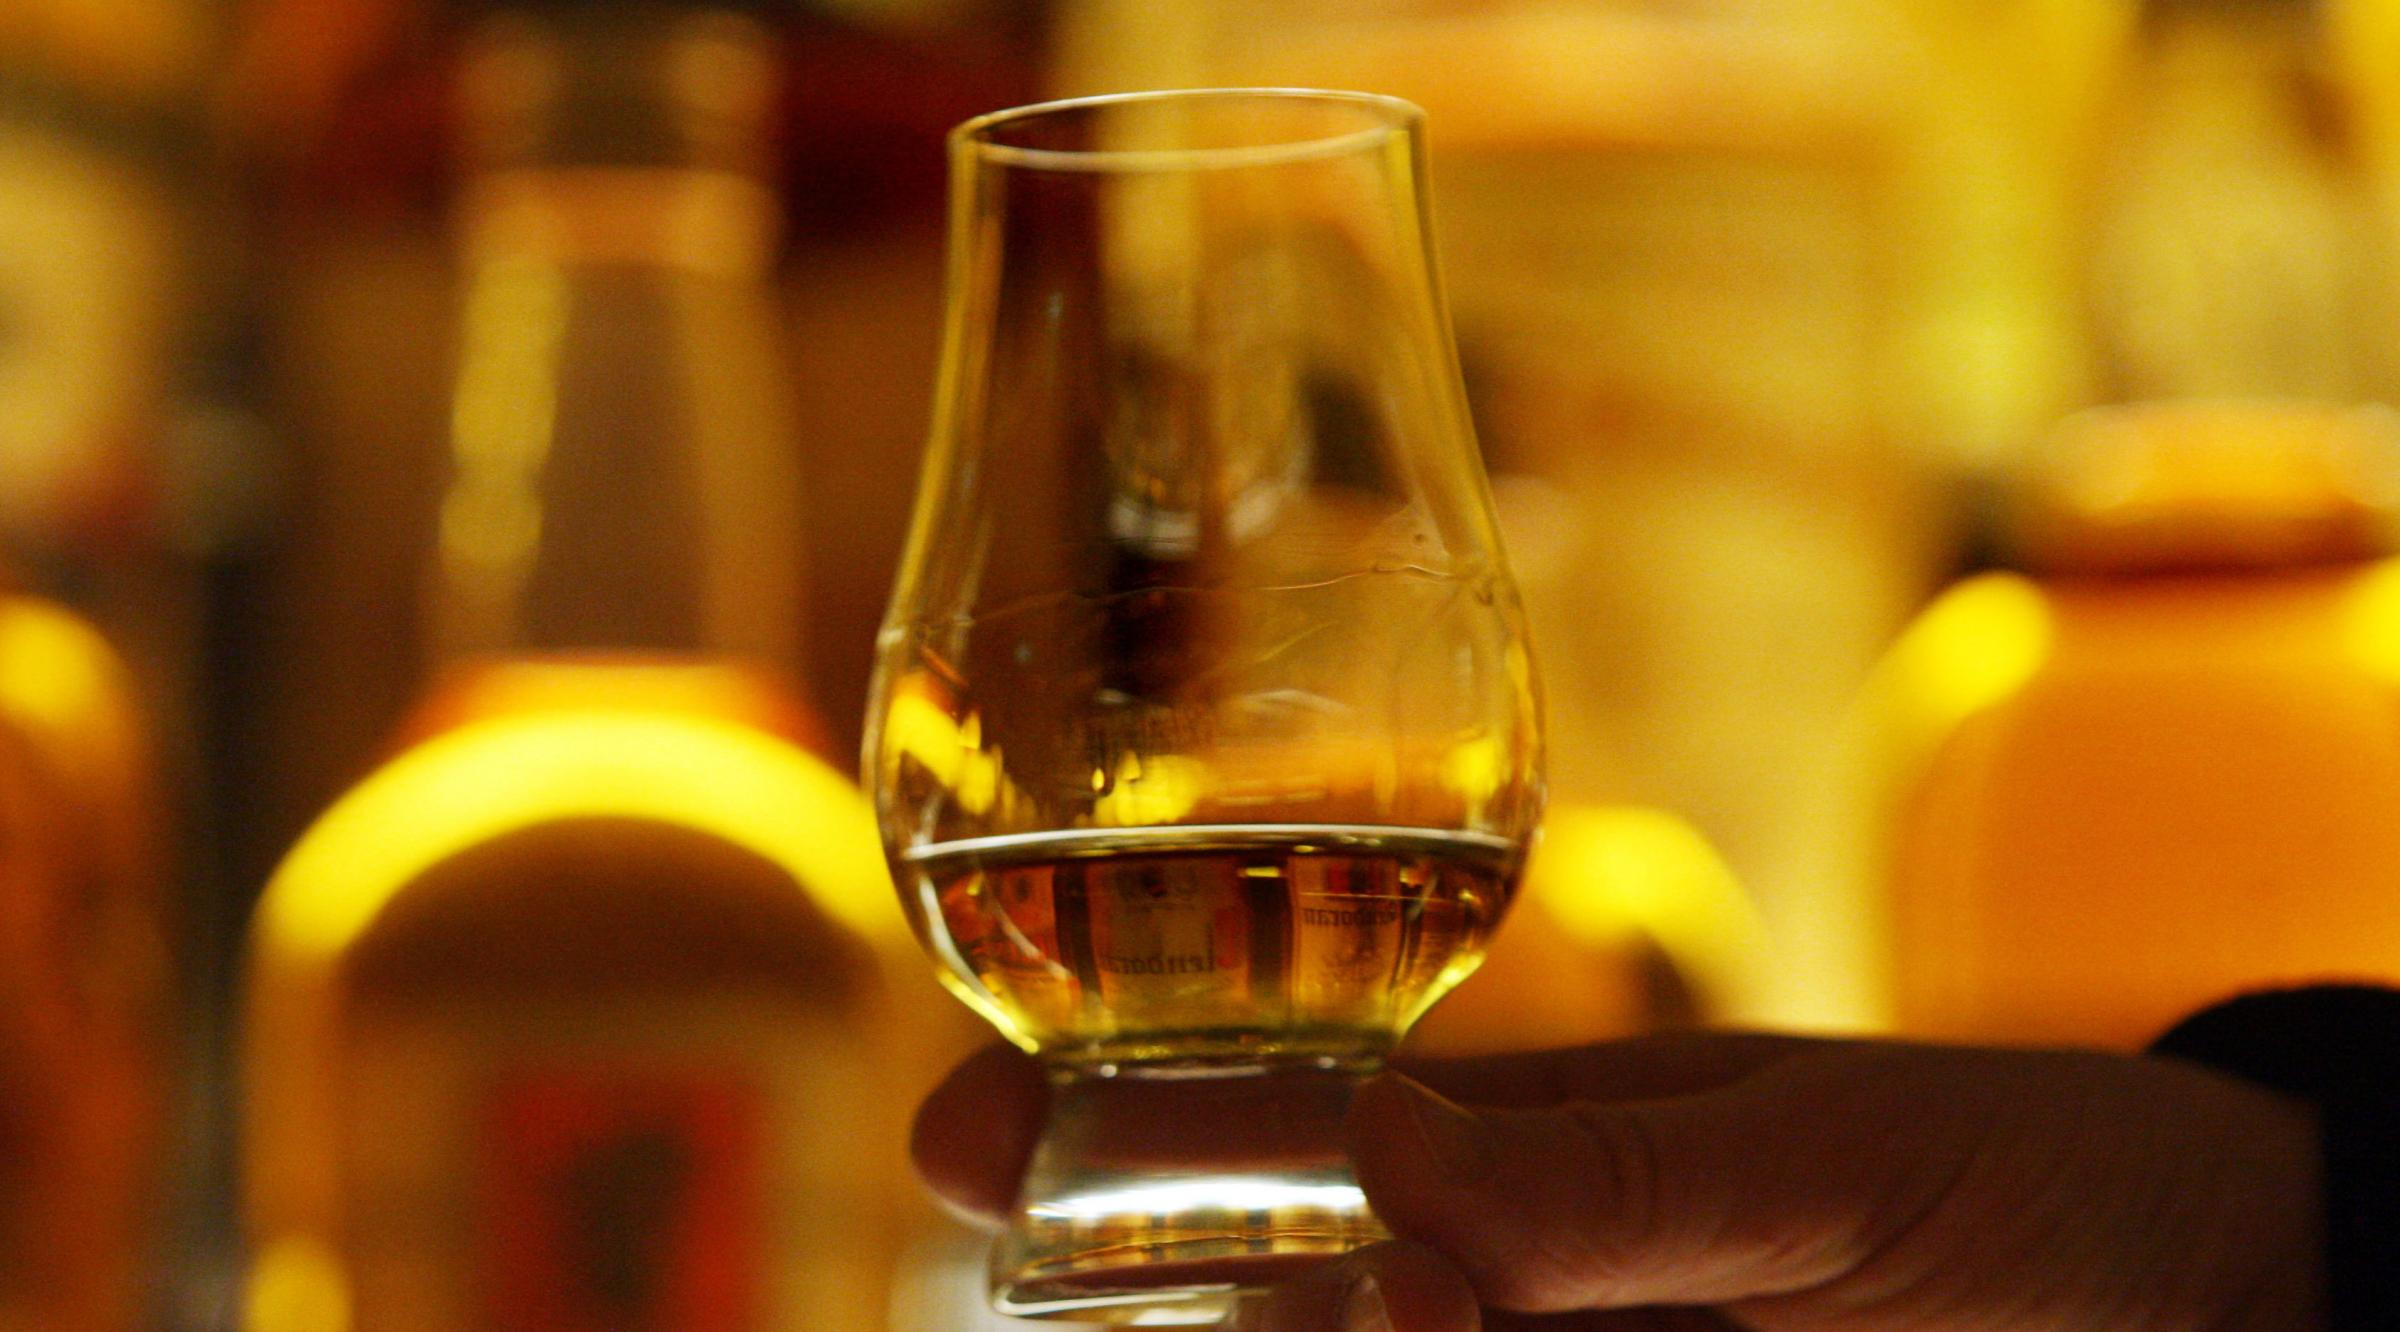 More than half of respondents said the UK Government should do more to support the Scotch whisky industry